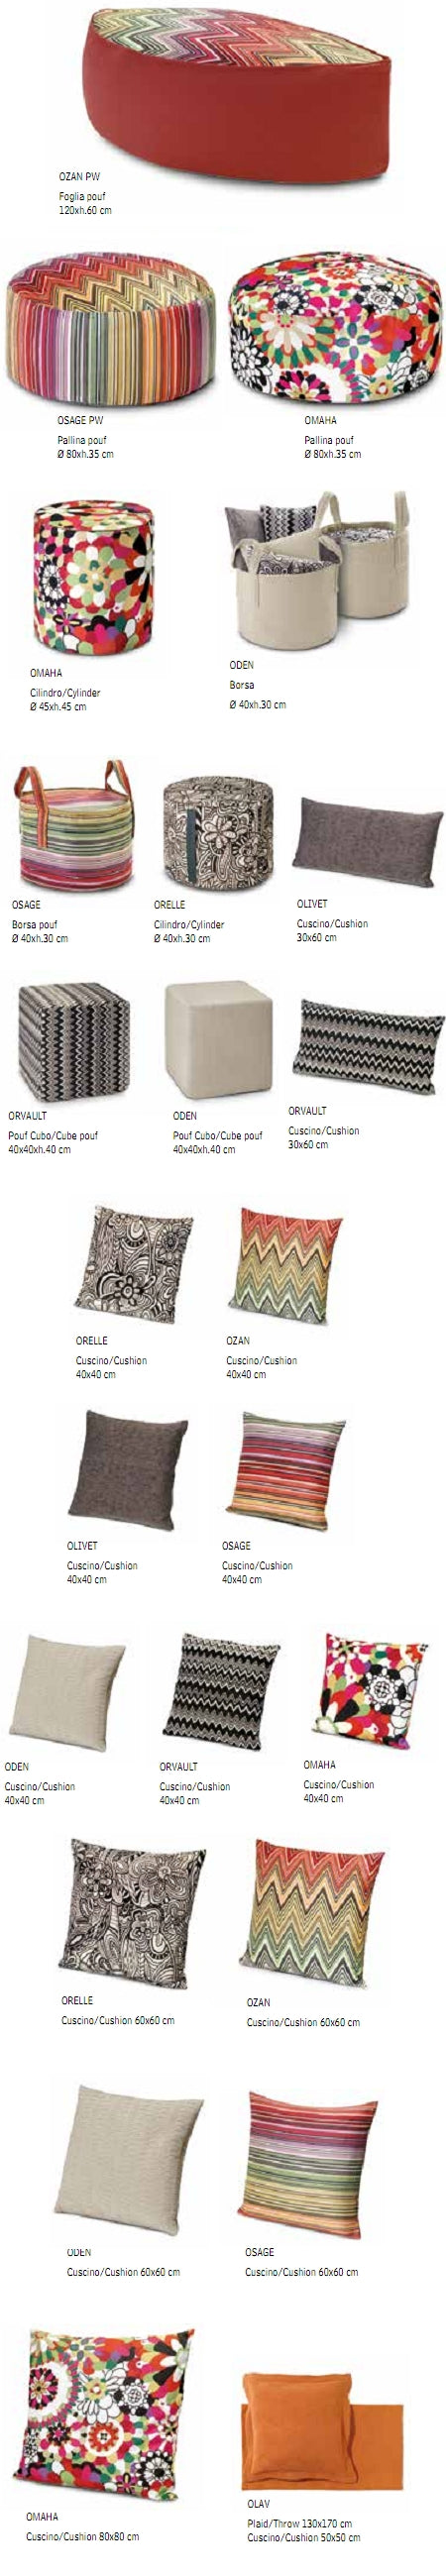 Missoni Cushion and Footstool Collection - Master Moderno Trevira 156 - italydesign.com